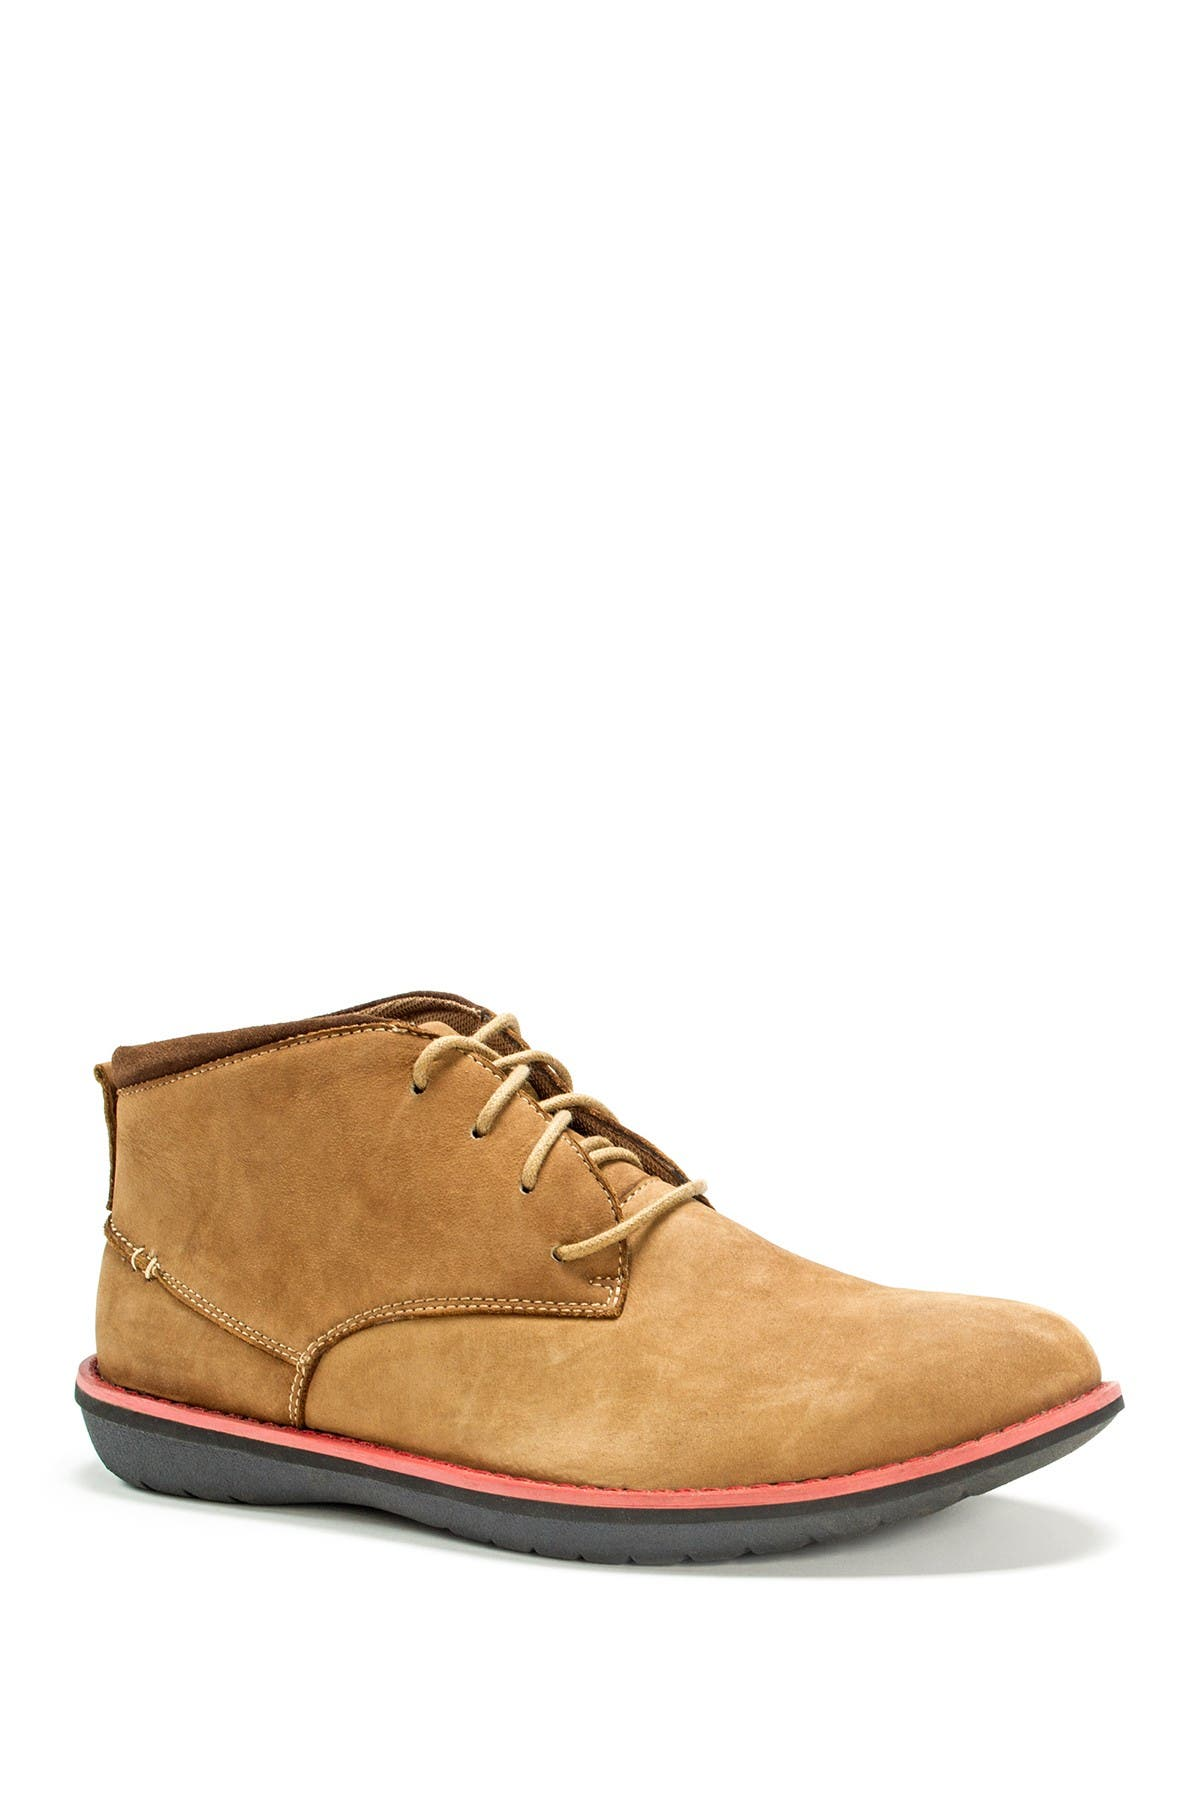 Image of MUK LUKS Charlie Leather Boot